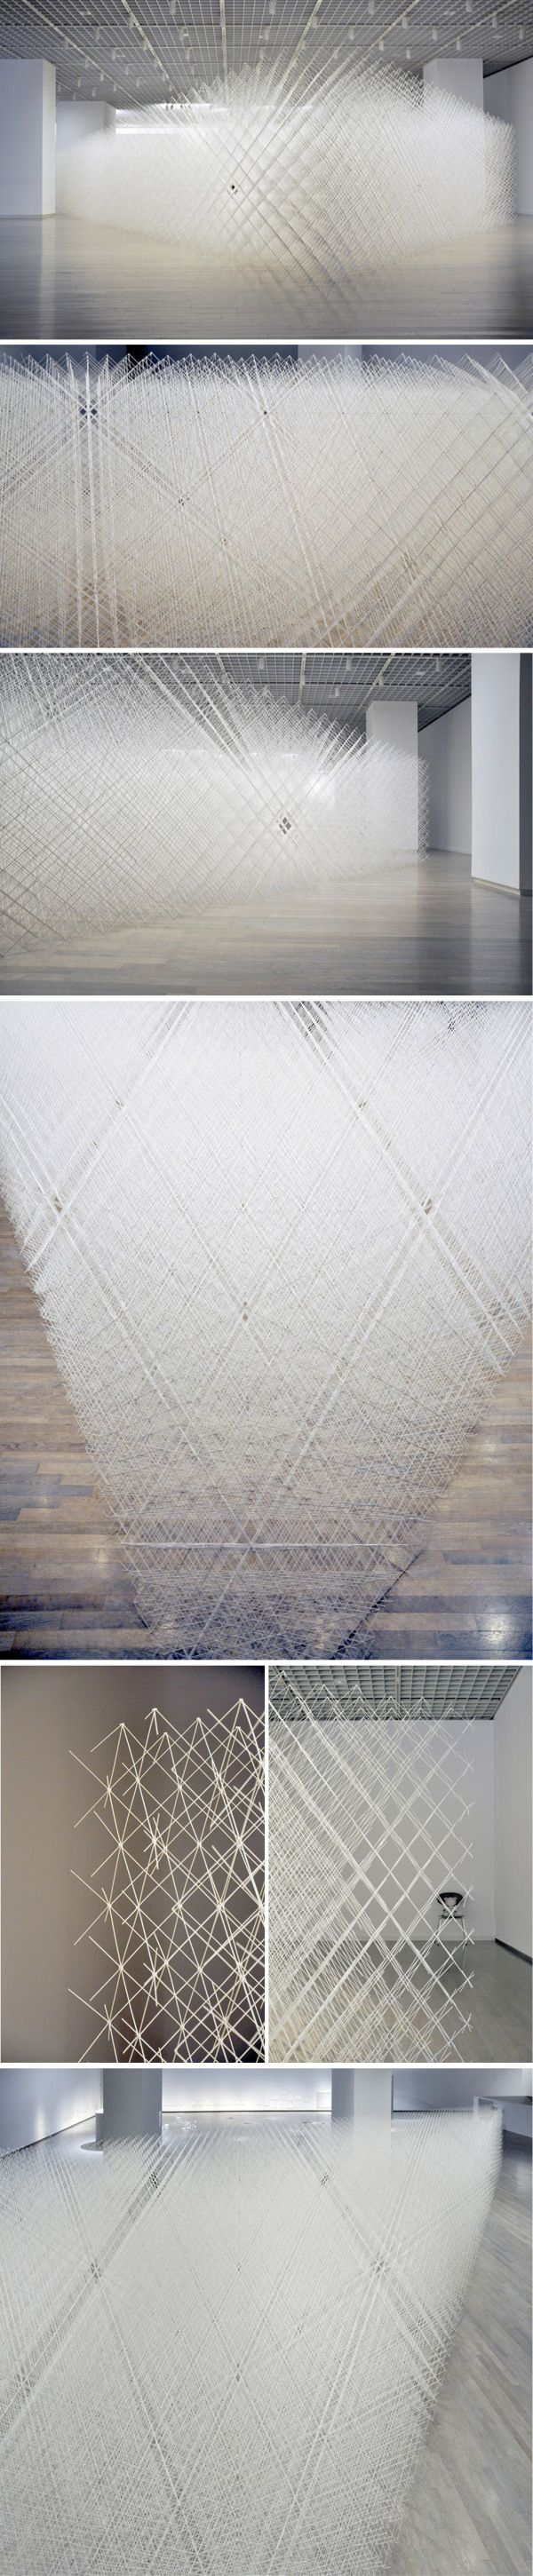 Ryuji Nakamura | Cornfield, a large scale installation, is a right triangle consisting of 30°, 60° and 90° angles. Constructed solely of glue and paper the delicate structure and lace-like appearance of the material softens the rigorous geometry of the art object.